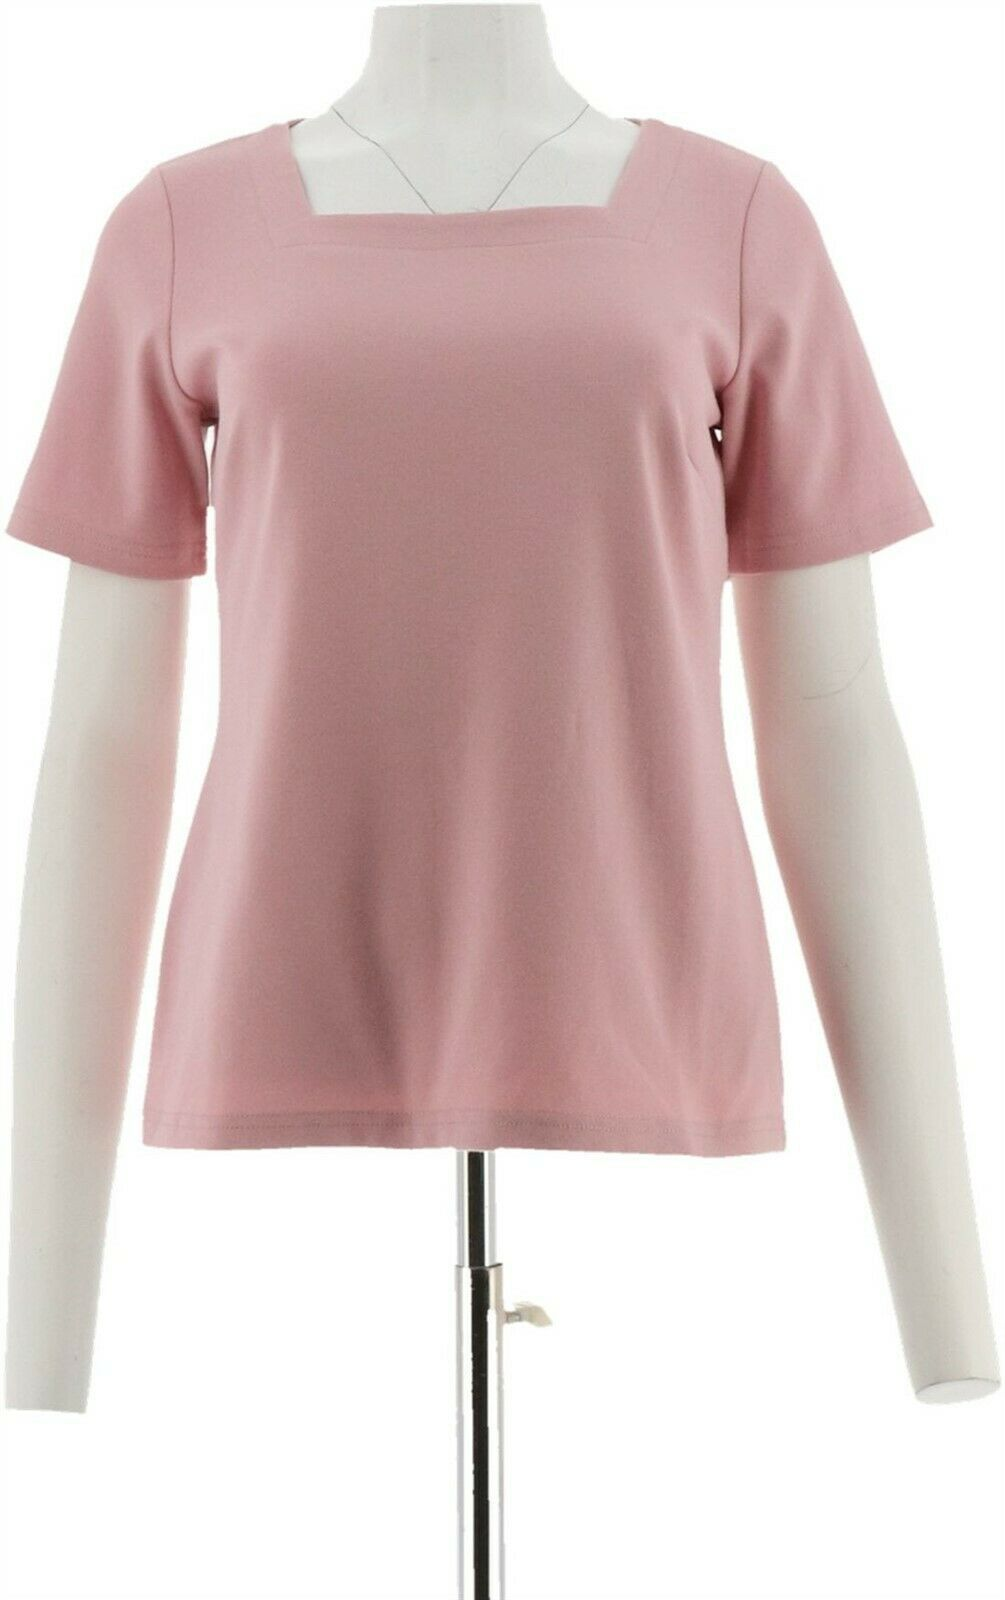 Primary image for Joan Rivers Womens Wardrobe Builders Square Neck Tee Shirt Blush L NEW A275296